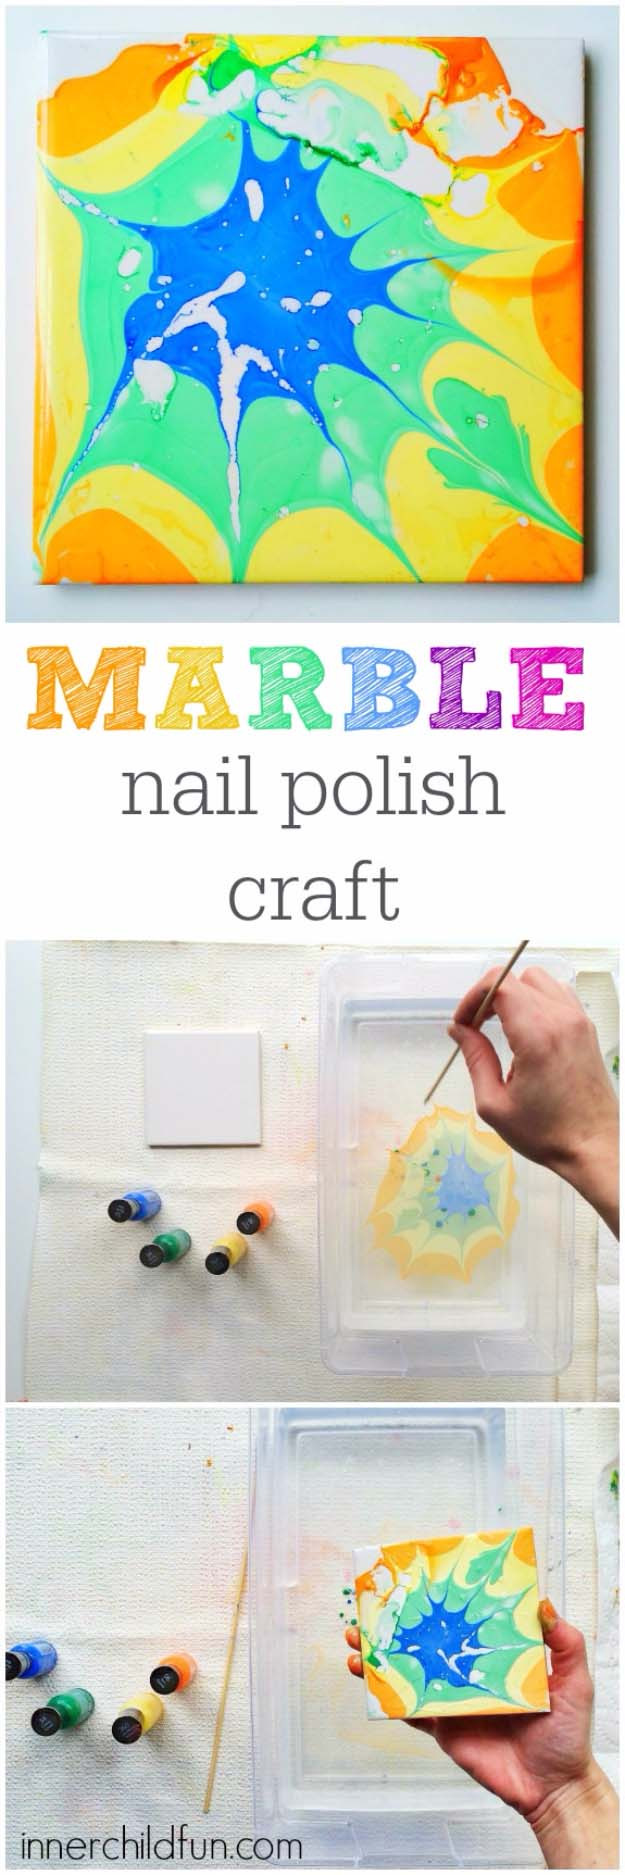 Fun Easy Crafts For Adults  31 Incredibly Cool DIY Crafts Using Nail Polish